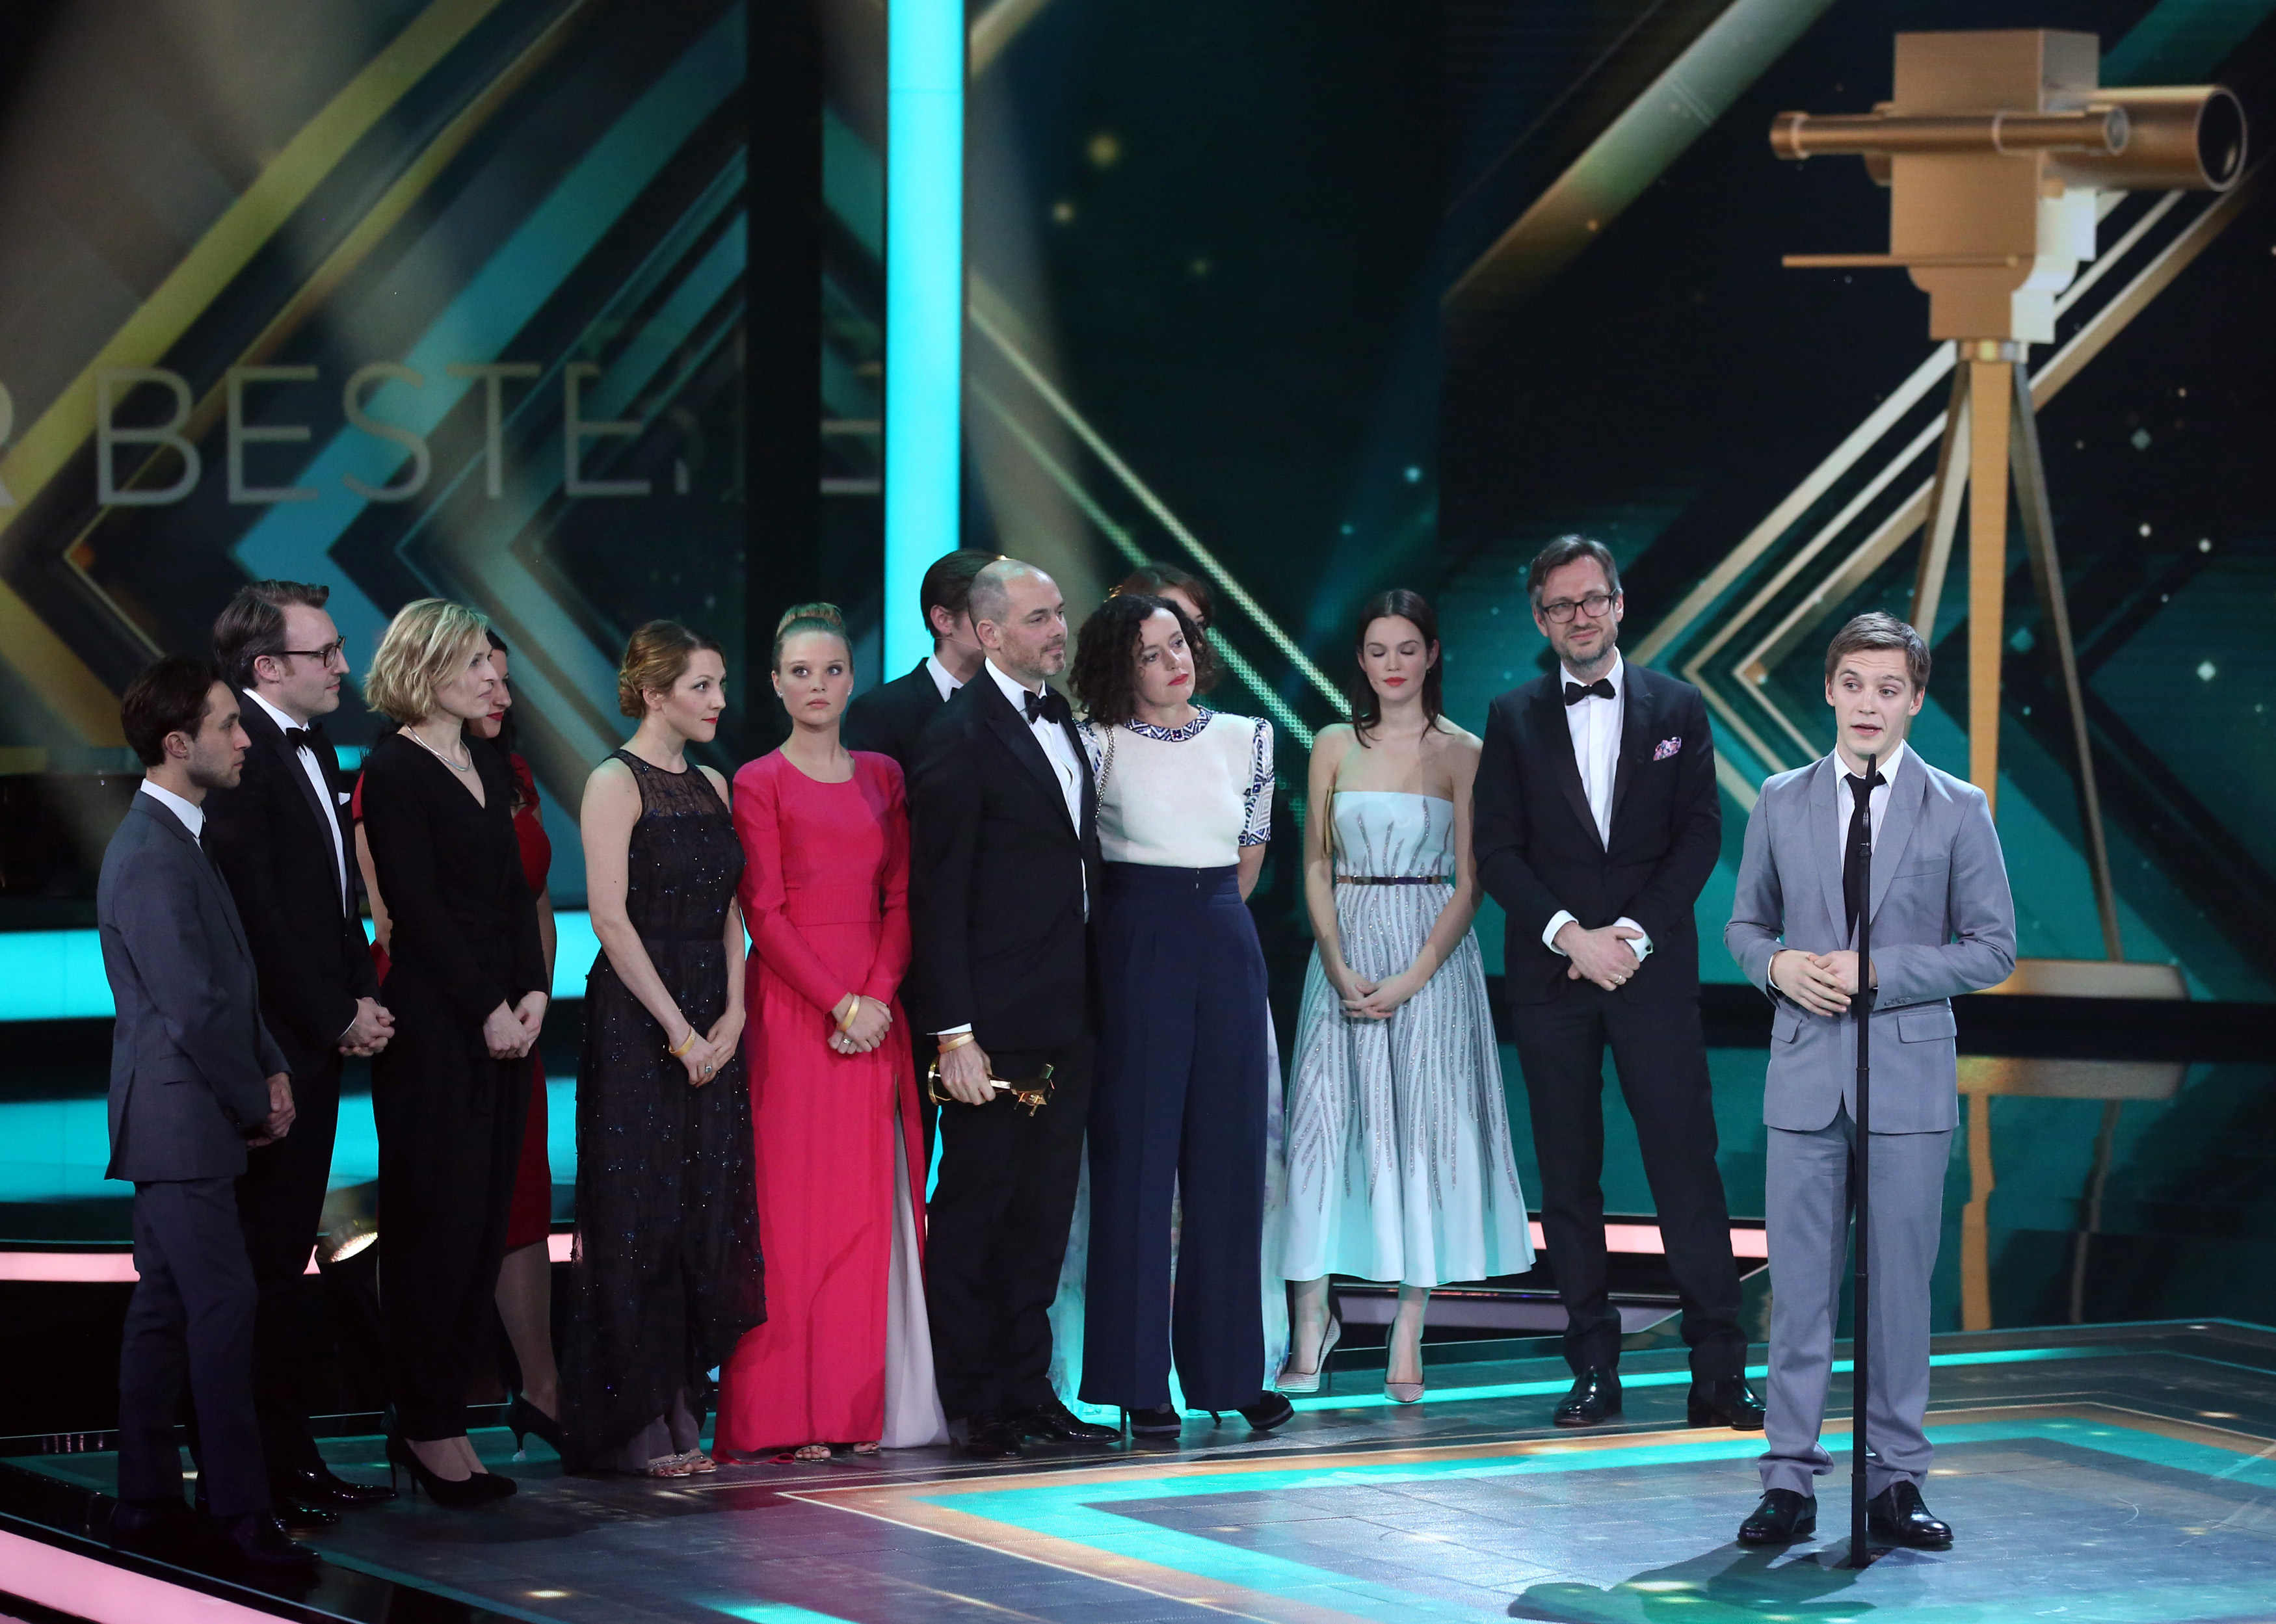 The cast of 'Deutschland 83' accepts the award for Best German Mini-series during Golden Camera awards ceremony in Hamburg